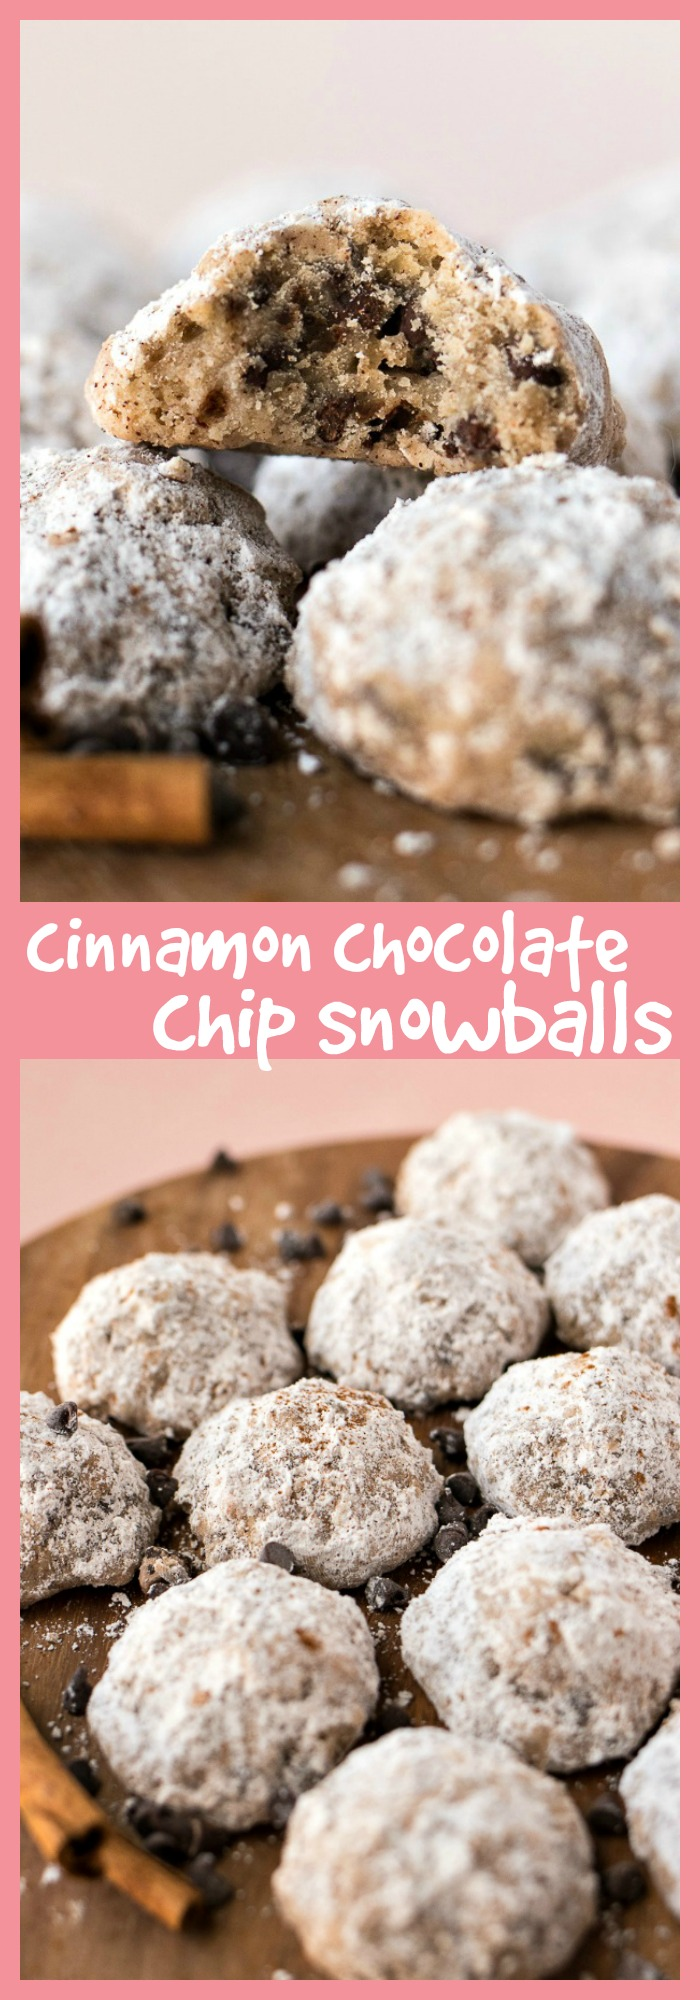 Cinnamon Chocolate Chip Snowballs photo collage